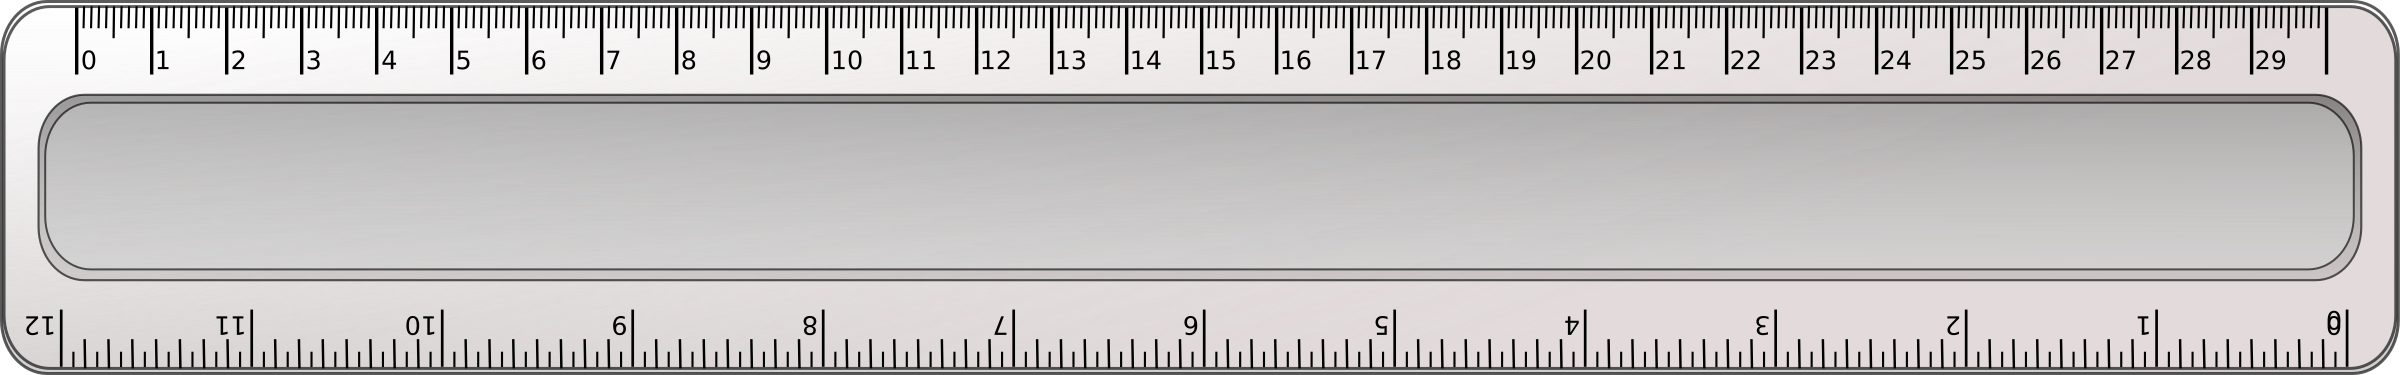 Clipart ruler long ruler. Without url big image